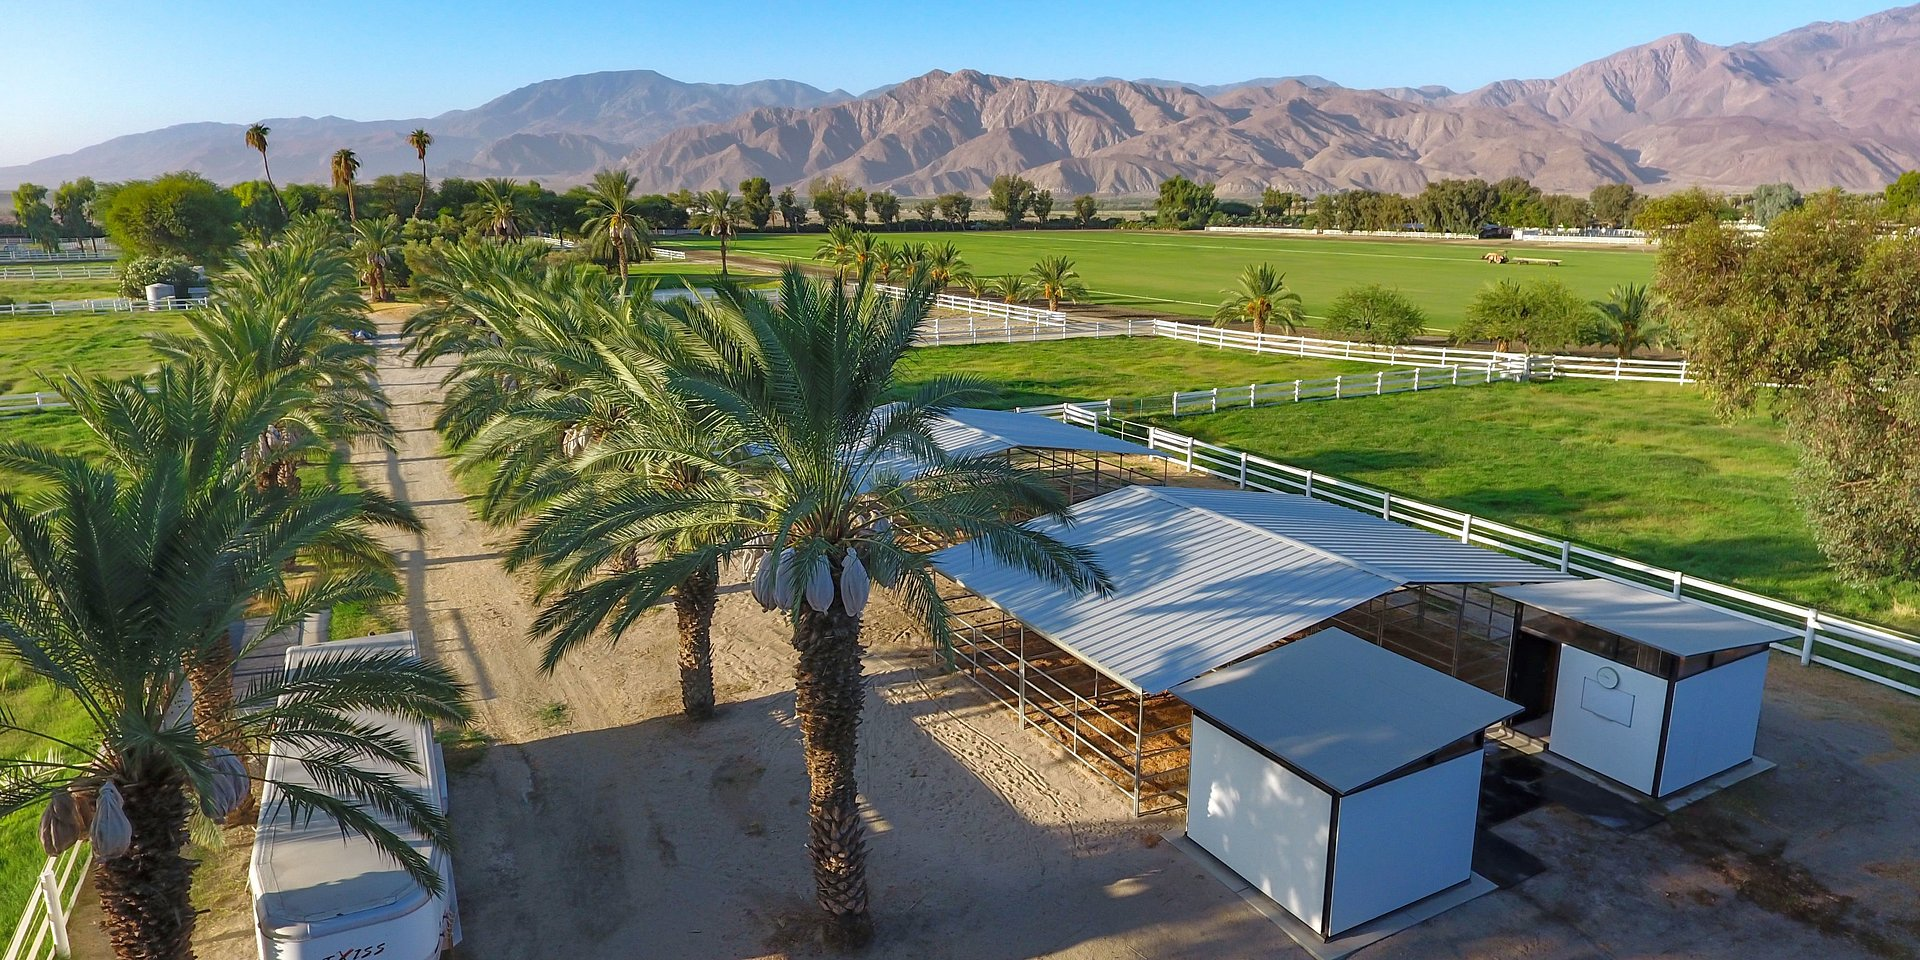 Coldwell Banker Residential Brokerage Lists Equestrian and Polo Property in Thermal Built by Actor William Devane for $1.275 MillionUntitled